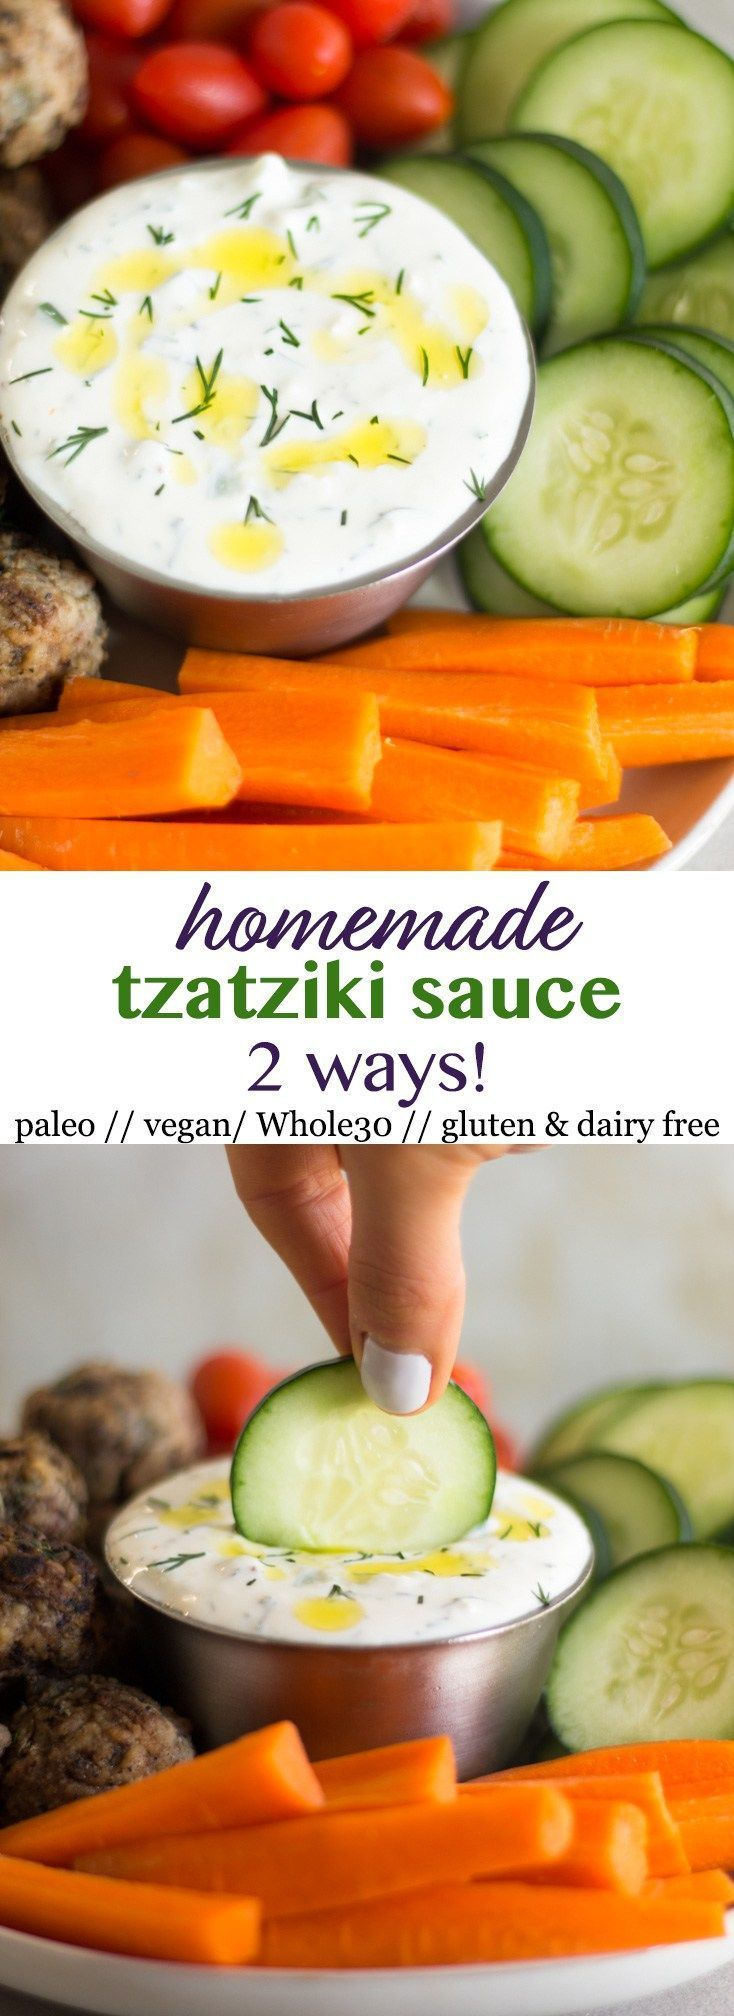 How to Make Tzatziki Sauce 2 Ways! This healthy and easytzatziki sauce will become a staple in your house. Only 8 ingredients and it can be made using Greek yogurt or dairy free so it's paleo, vegan, gluten free, and Whole30 approved. Great for meal prep too! - Eat the Gains #dairyfree #glutenfree #paleo #whole30 #vegan